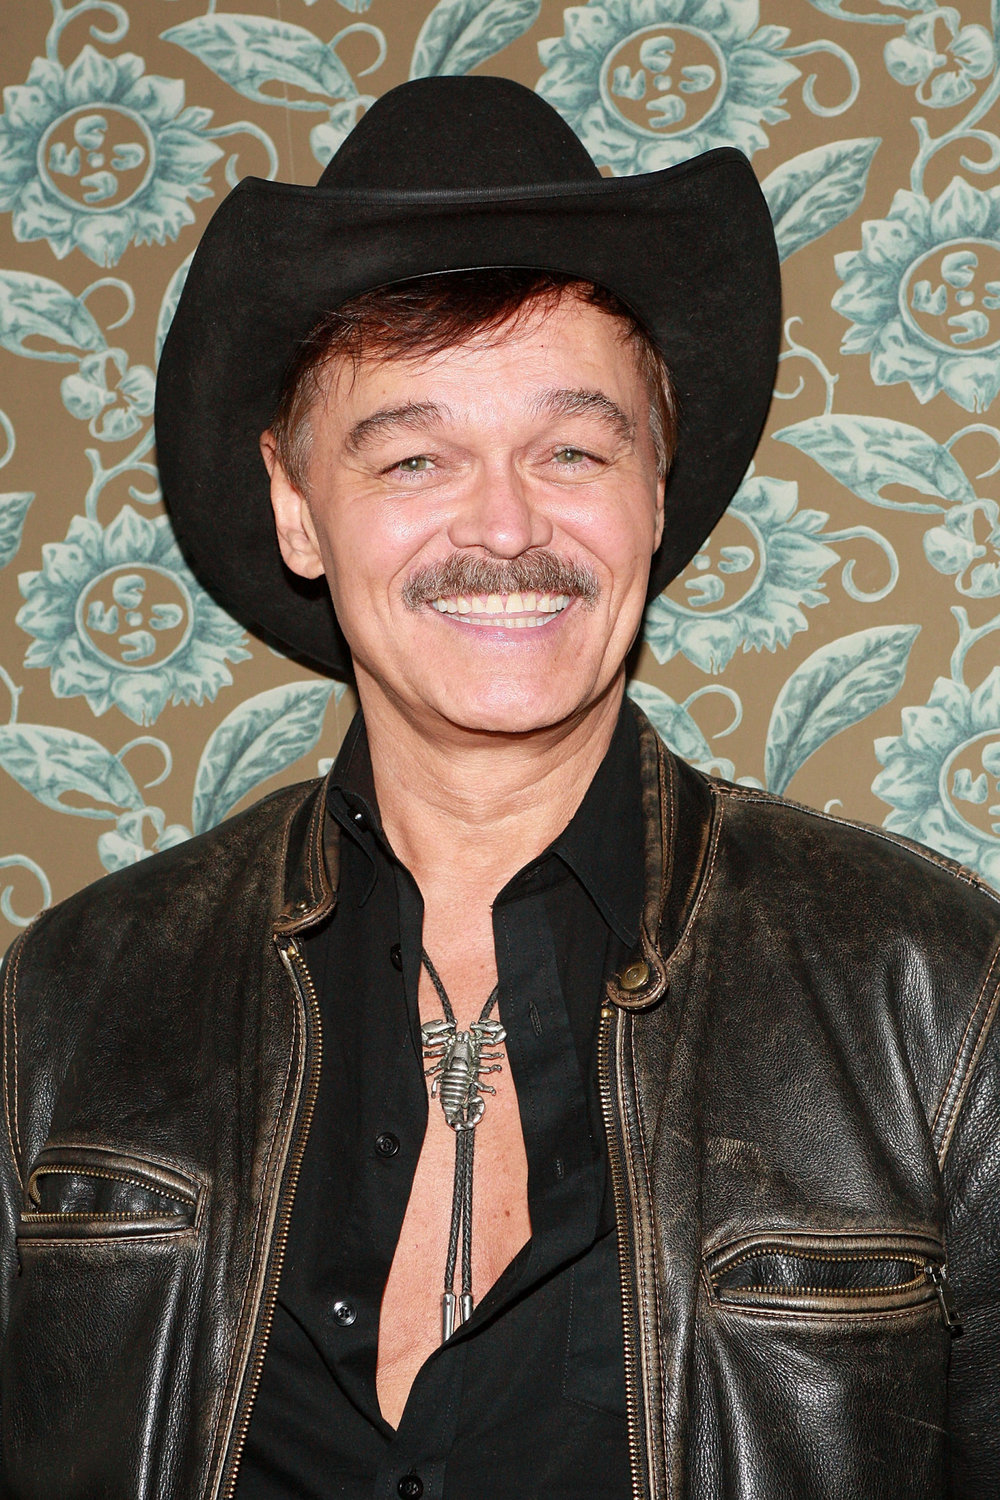 o-RANDY-JONES-VILLAGE-PEOPLE-MARRIAGE-facebook.jpg